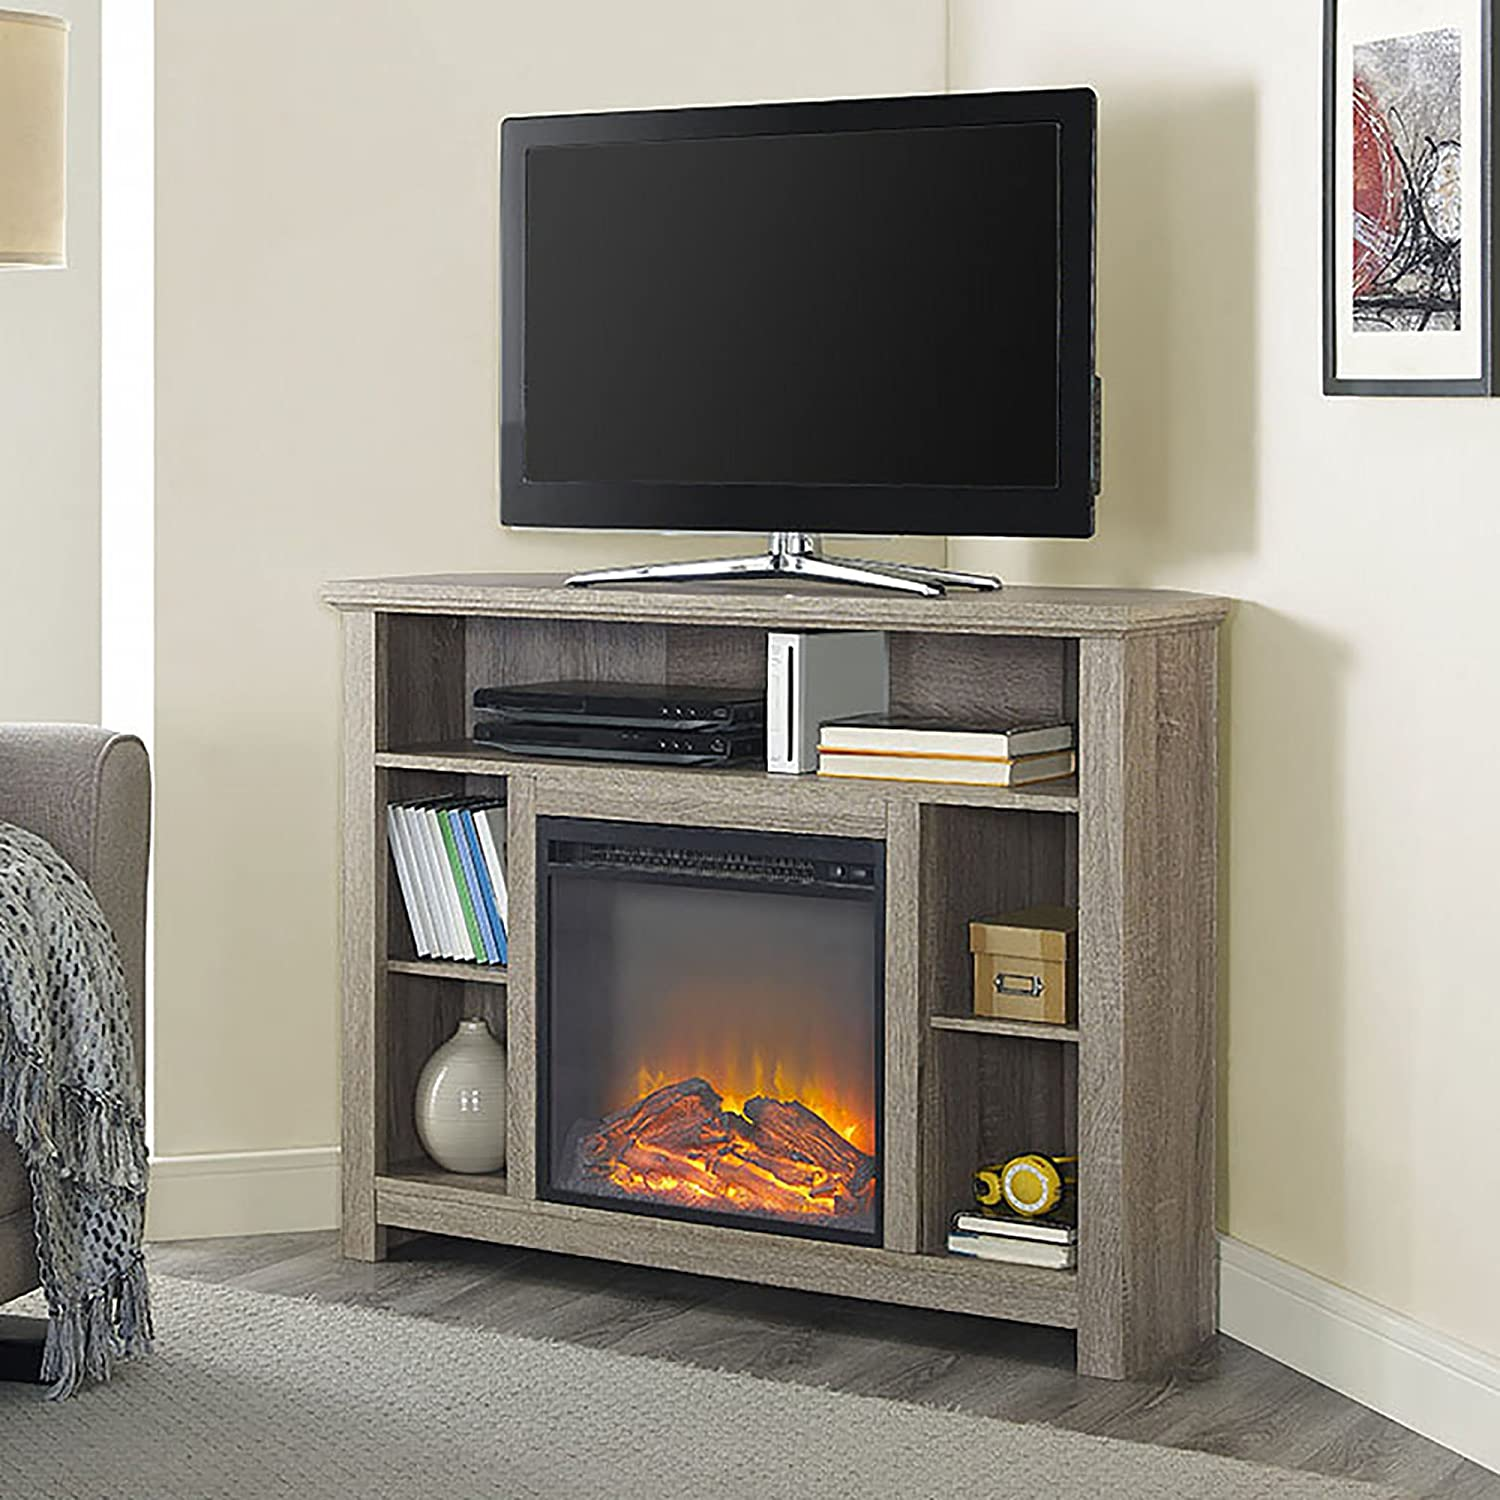 WE Furniture 44-inch Driftwood Wood Corner Fireplace TV Stand Console for Flat Screen TV's Up to 48-inch Entertainment Center